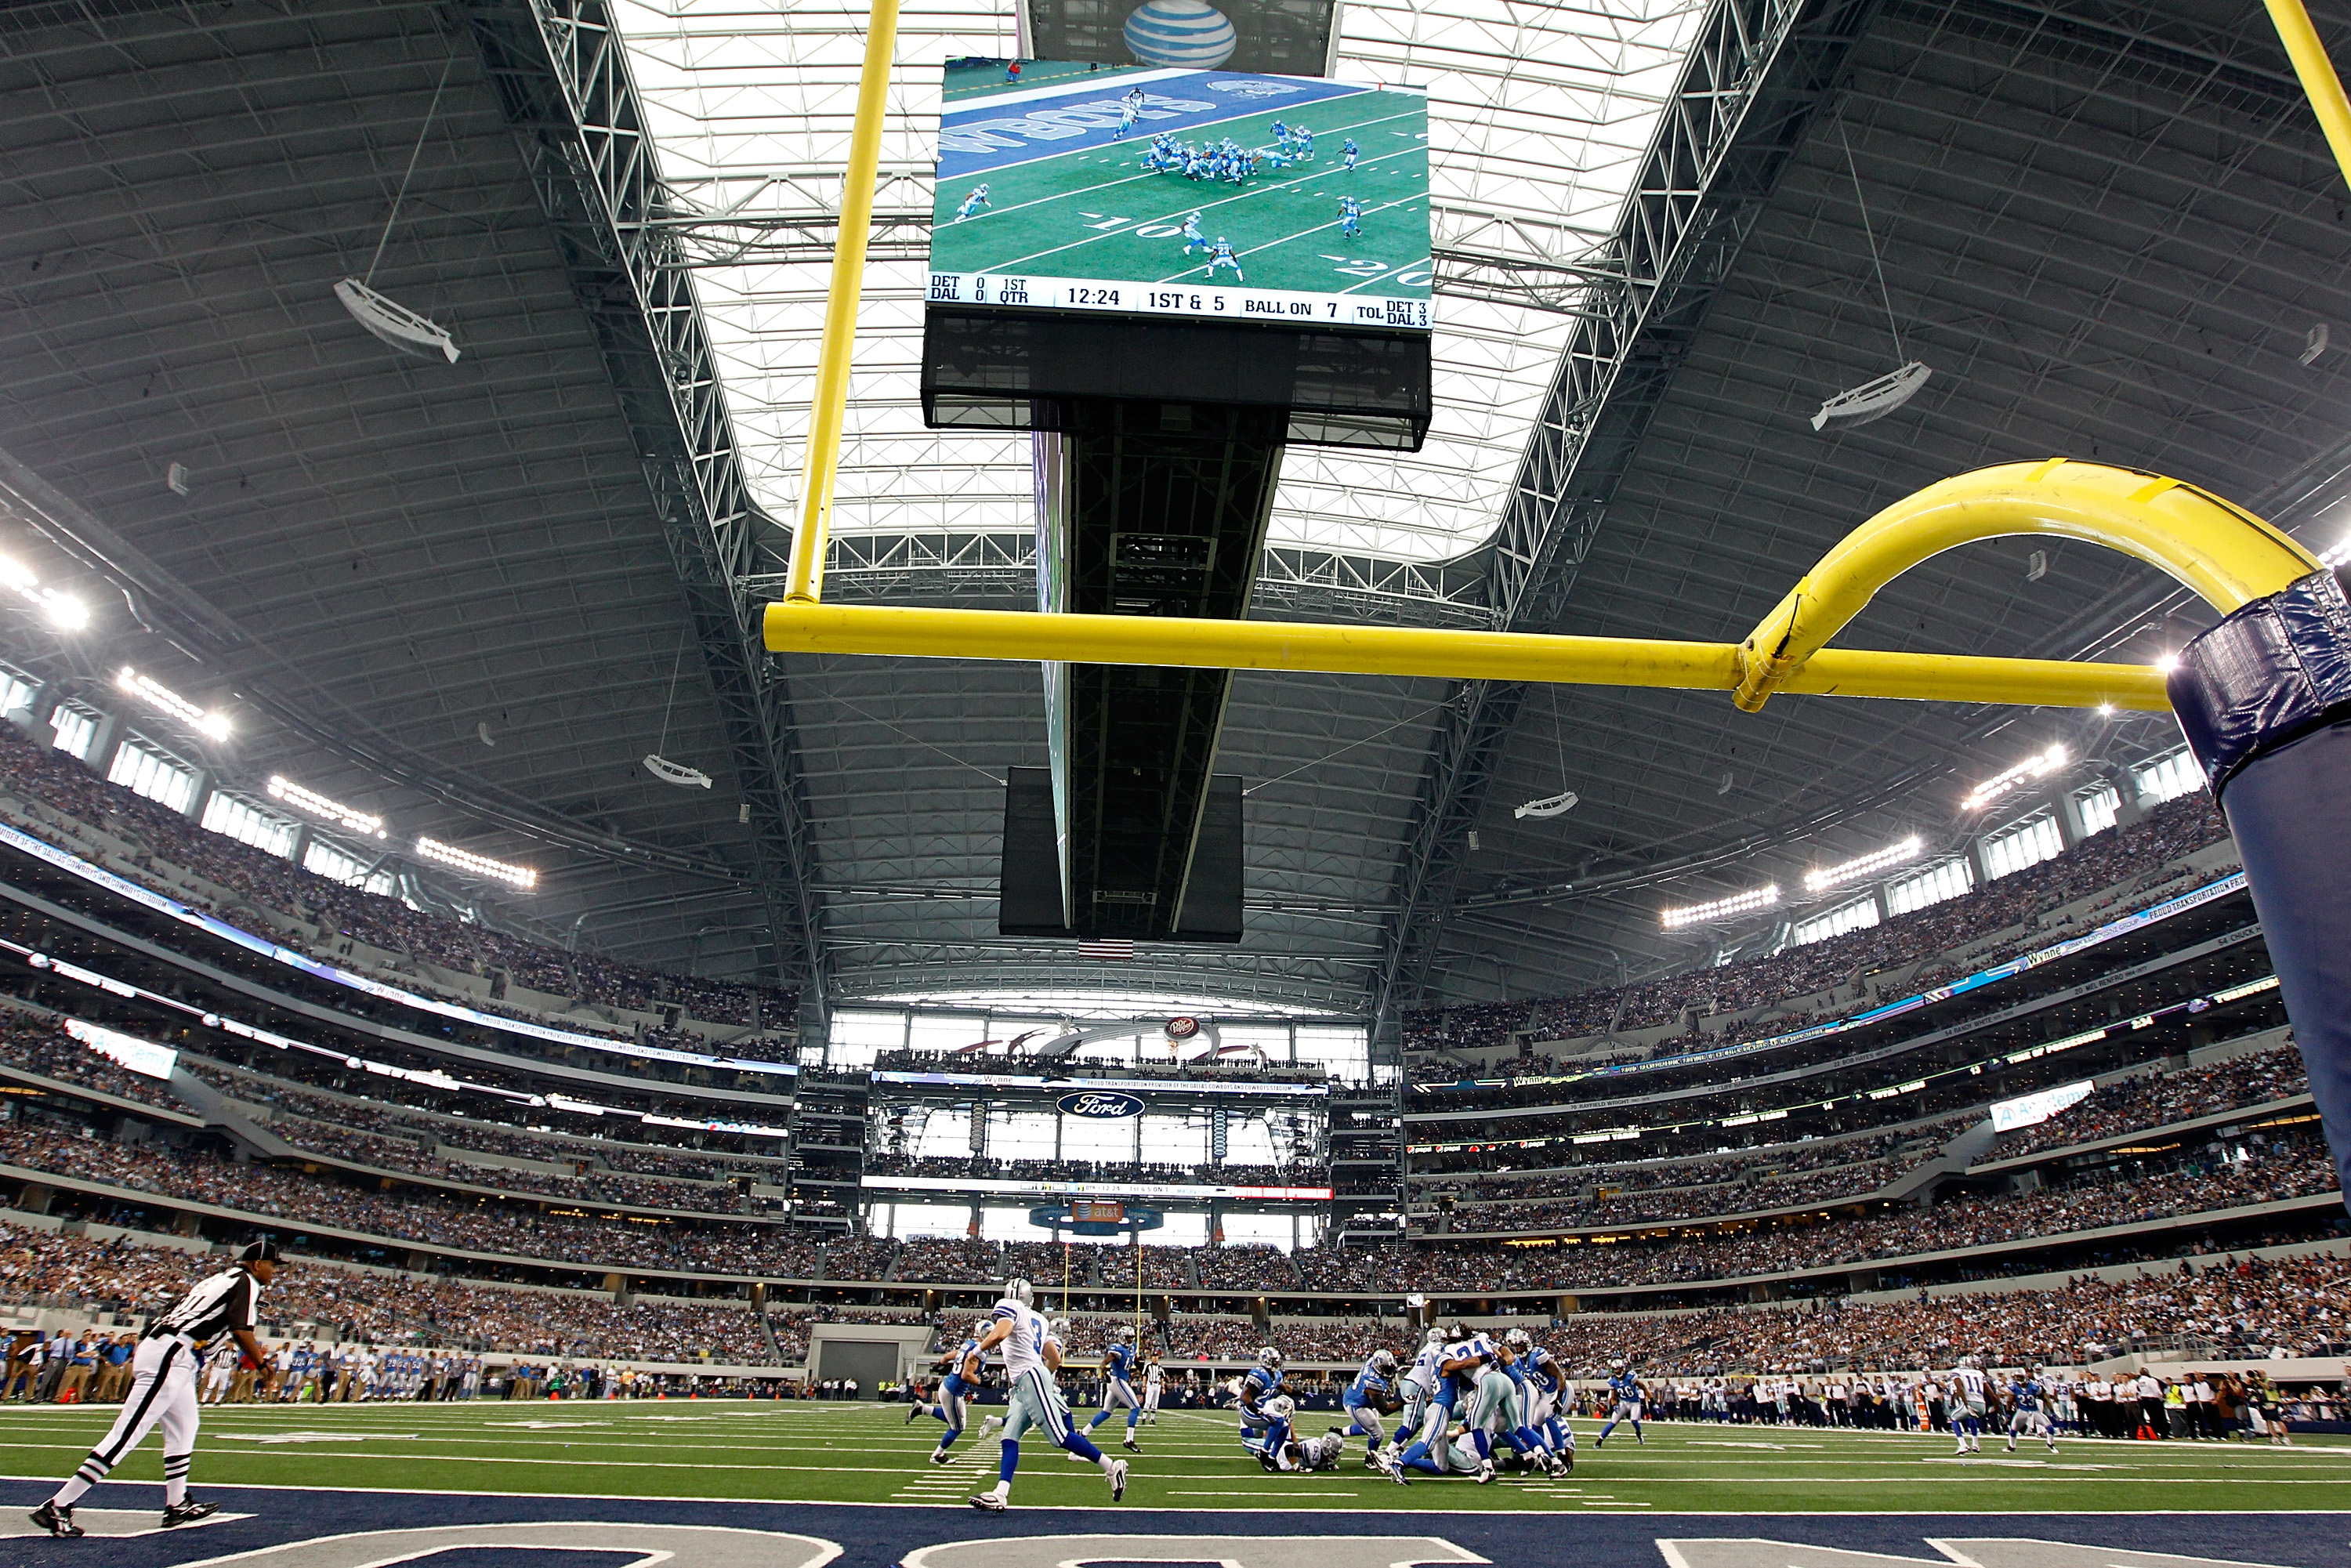 ARLINGTON, TX - NOVEMBER 21:  The Dallas Cowboys take on the Detroit Lions at Cowboys Stadium on November 21, 2010 in Arlington, Texas.  The Cowboys beat the Lions 35-19.  (Photo by Tom Pennington/Getty Images)